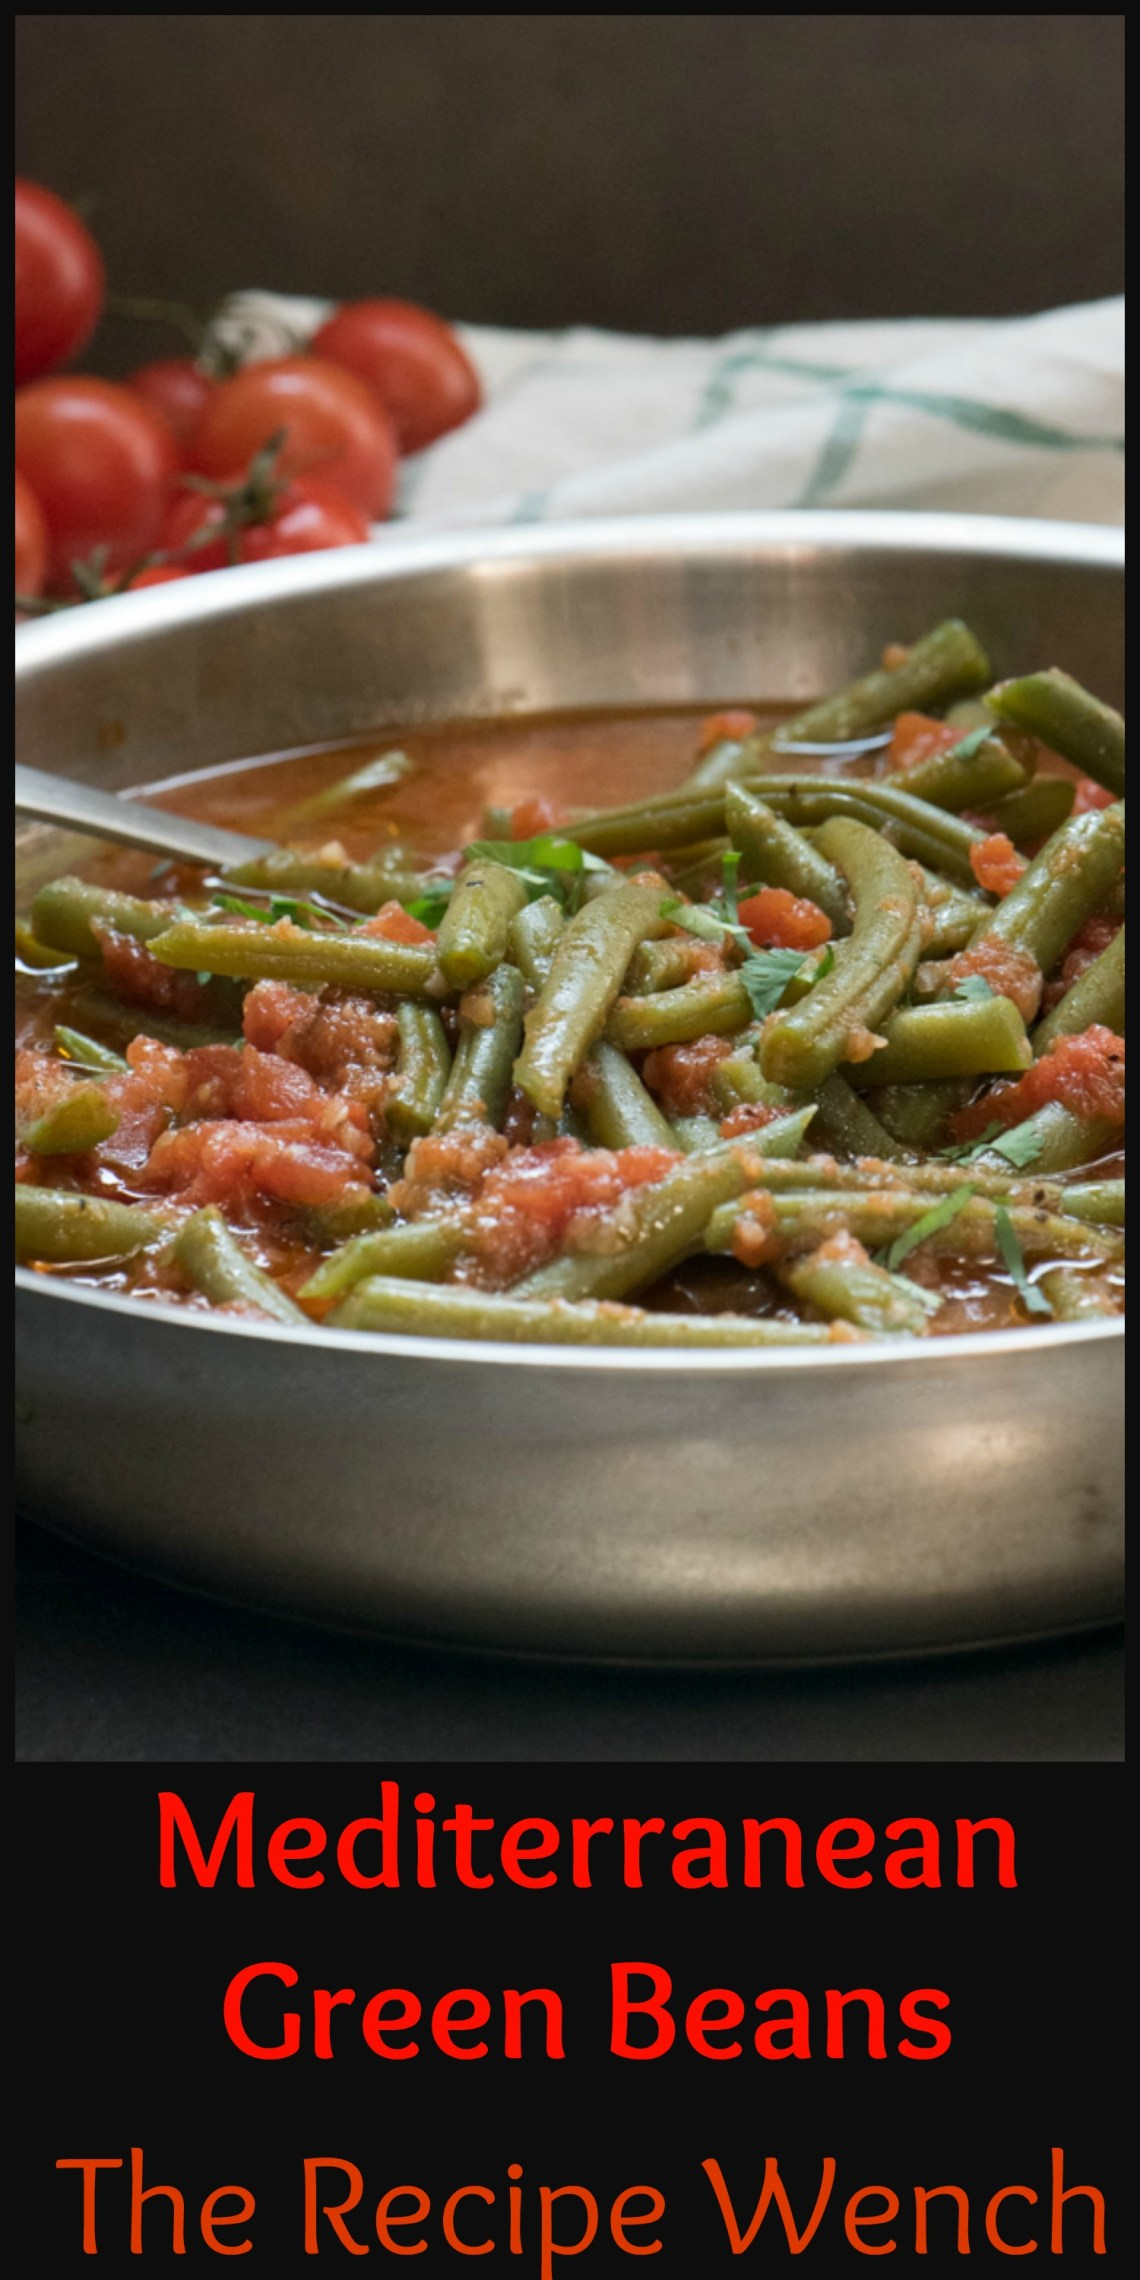 Mediterranean Green Beans make an easy and healthy side dish or appetizer. Great piping hot or at room temperature. Enjoy! | The Recipe Wench